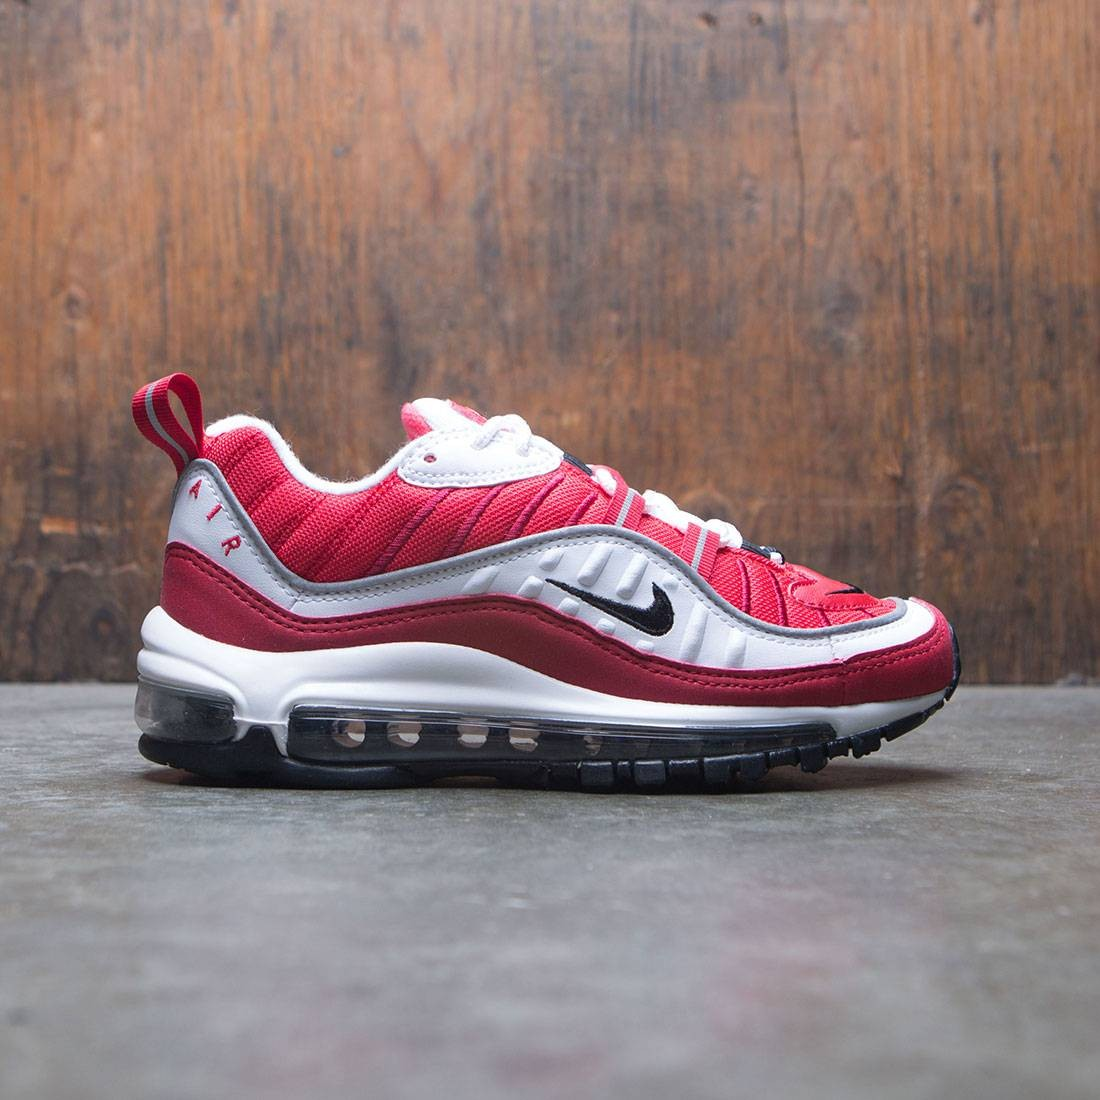 nike air max 97 bianco nero donne palestra red riflettere d'argento